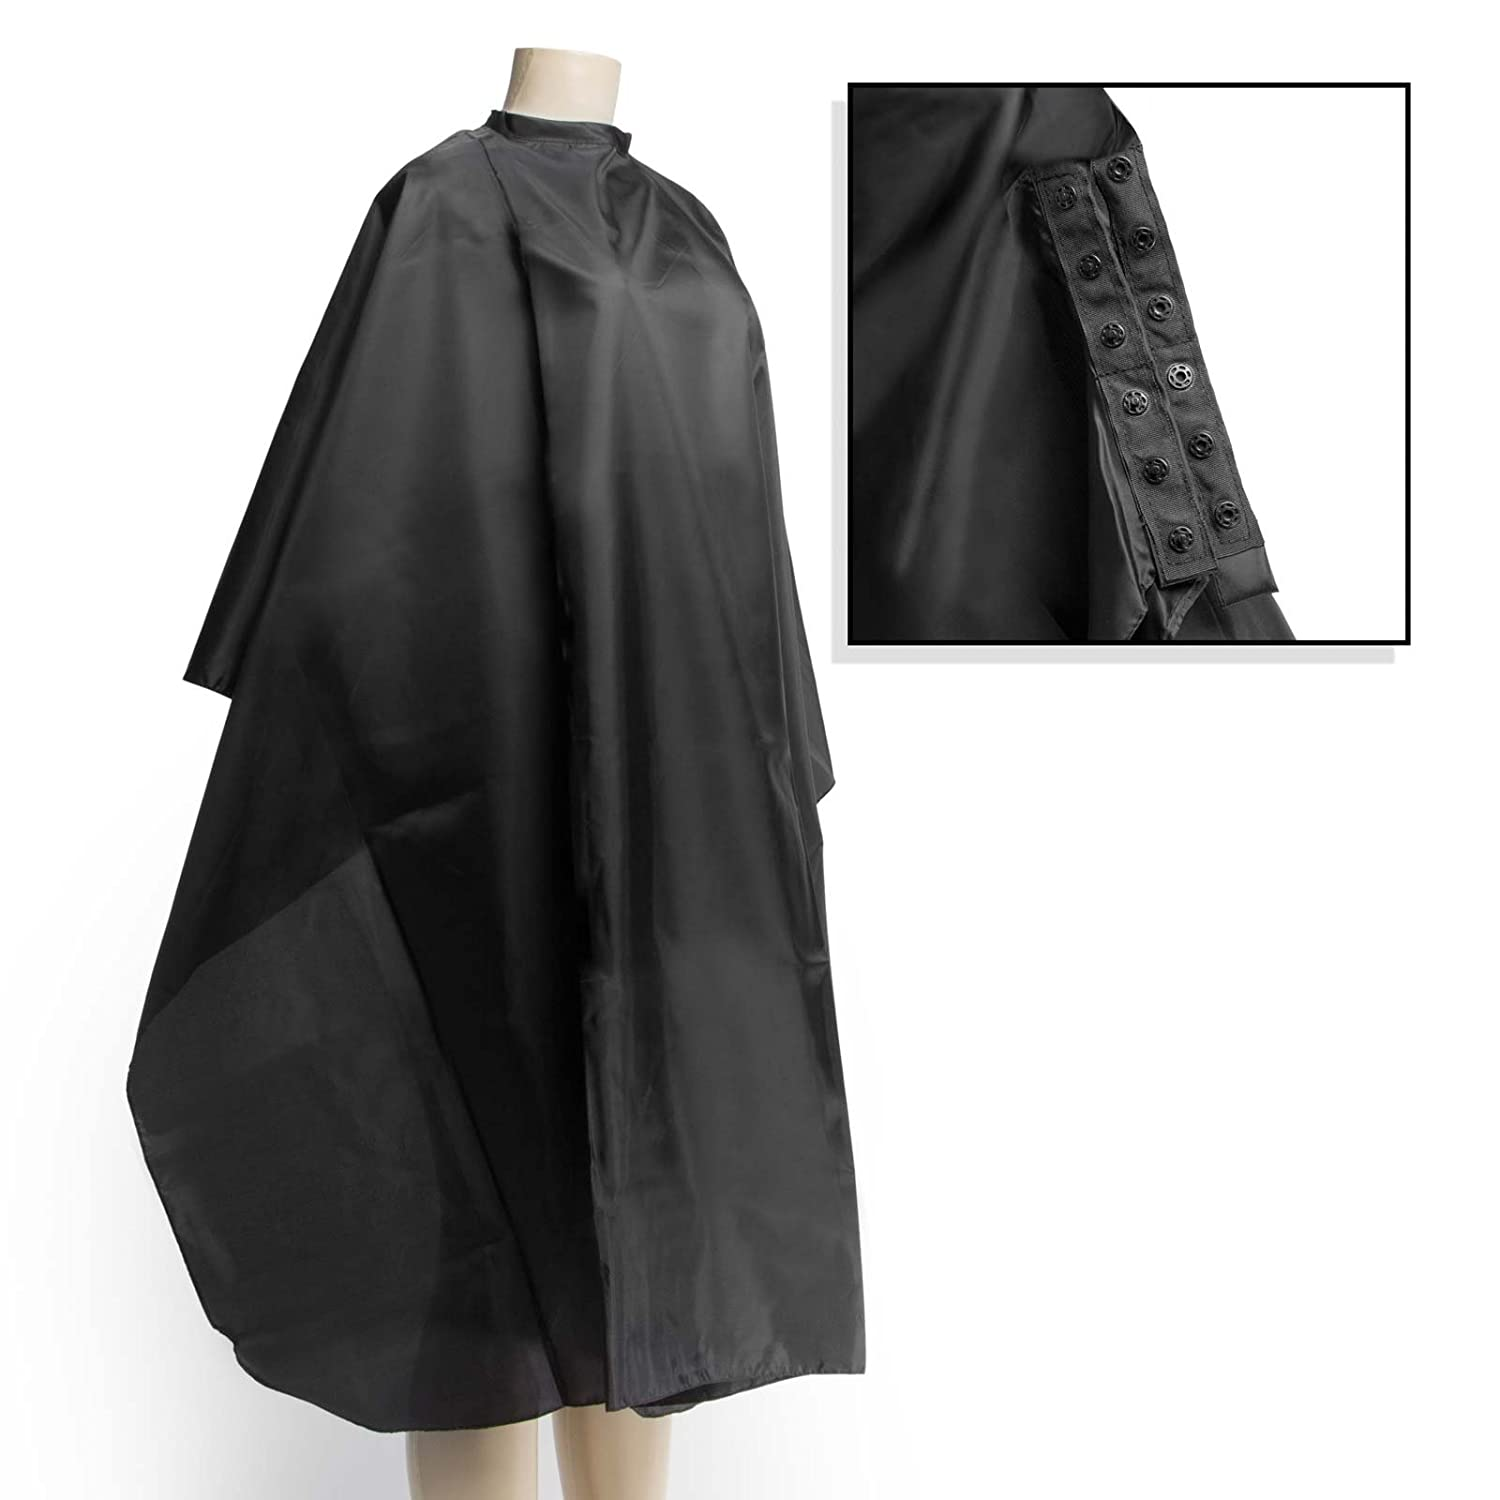 "Salon Sundry Professional Hair Salon Nylon Cape with Snap Closure - 50"" x 60"""